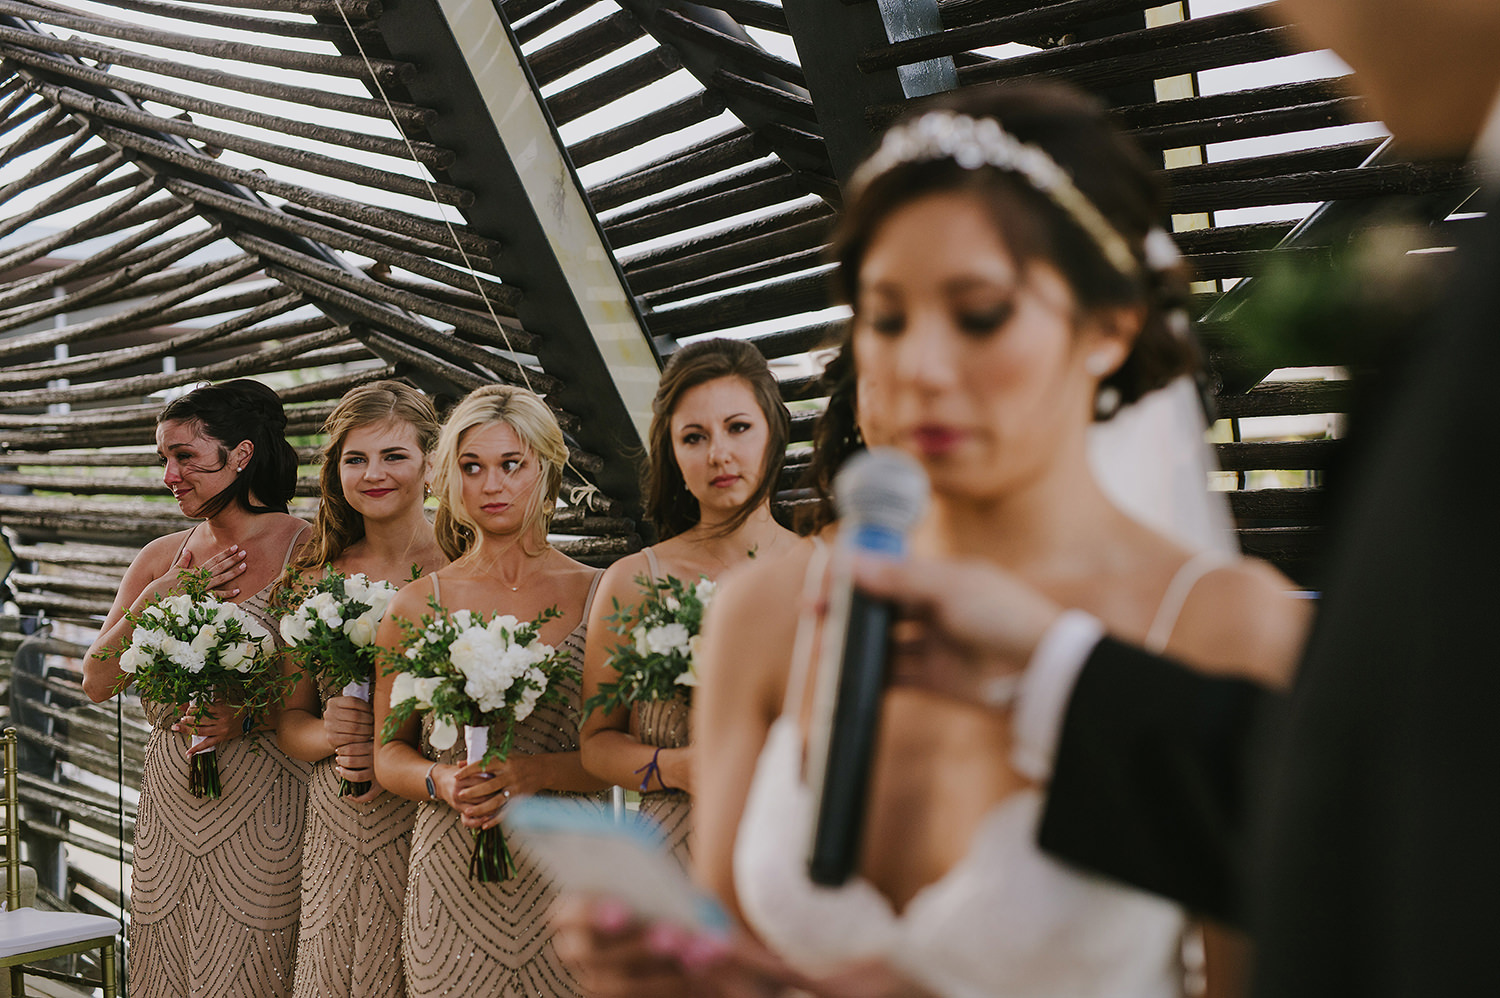 CherylReed_Wedding_Kape_Photography_WeddingPhotography_Mexico_Boda_Fotografia_Royalton_Hideway_Cancun_RivieraMaya_PlayadelCarmen_Beach_285FB_BLOG.jpg